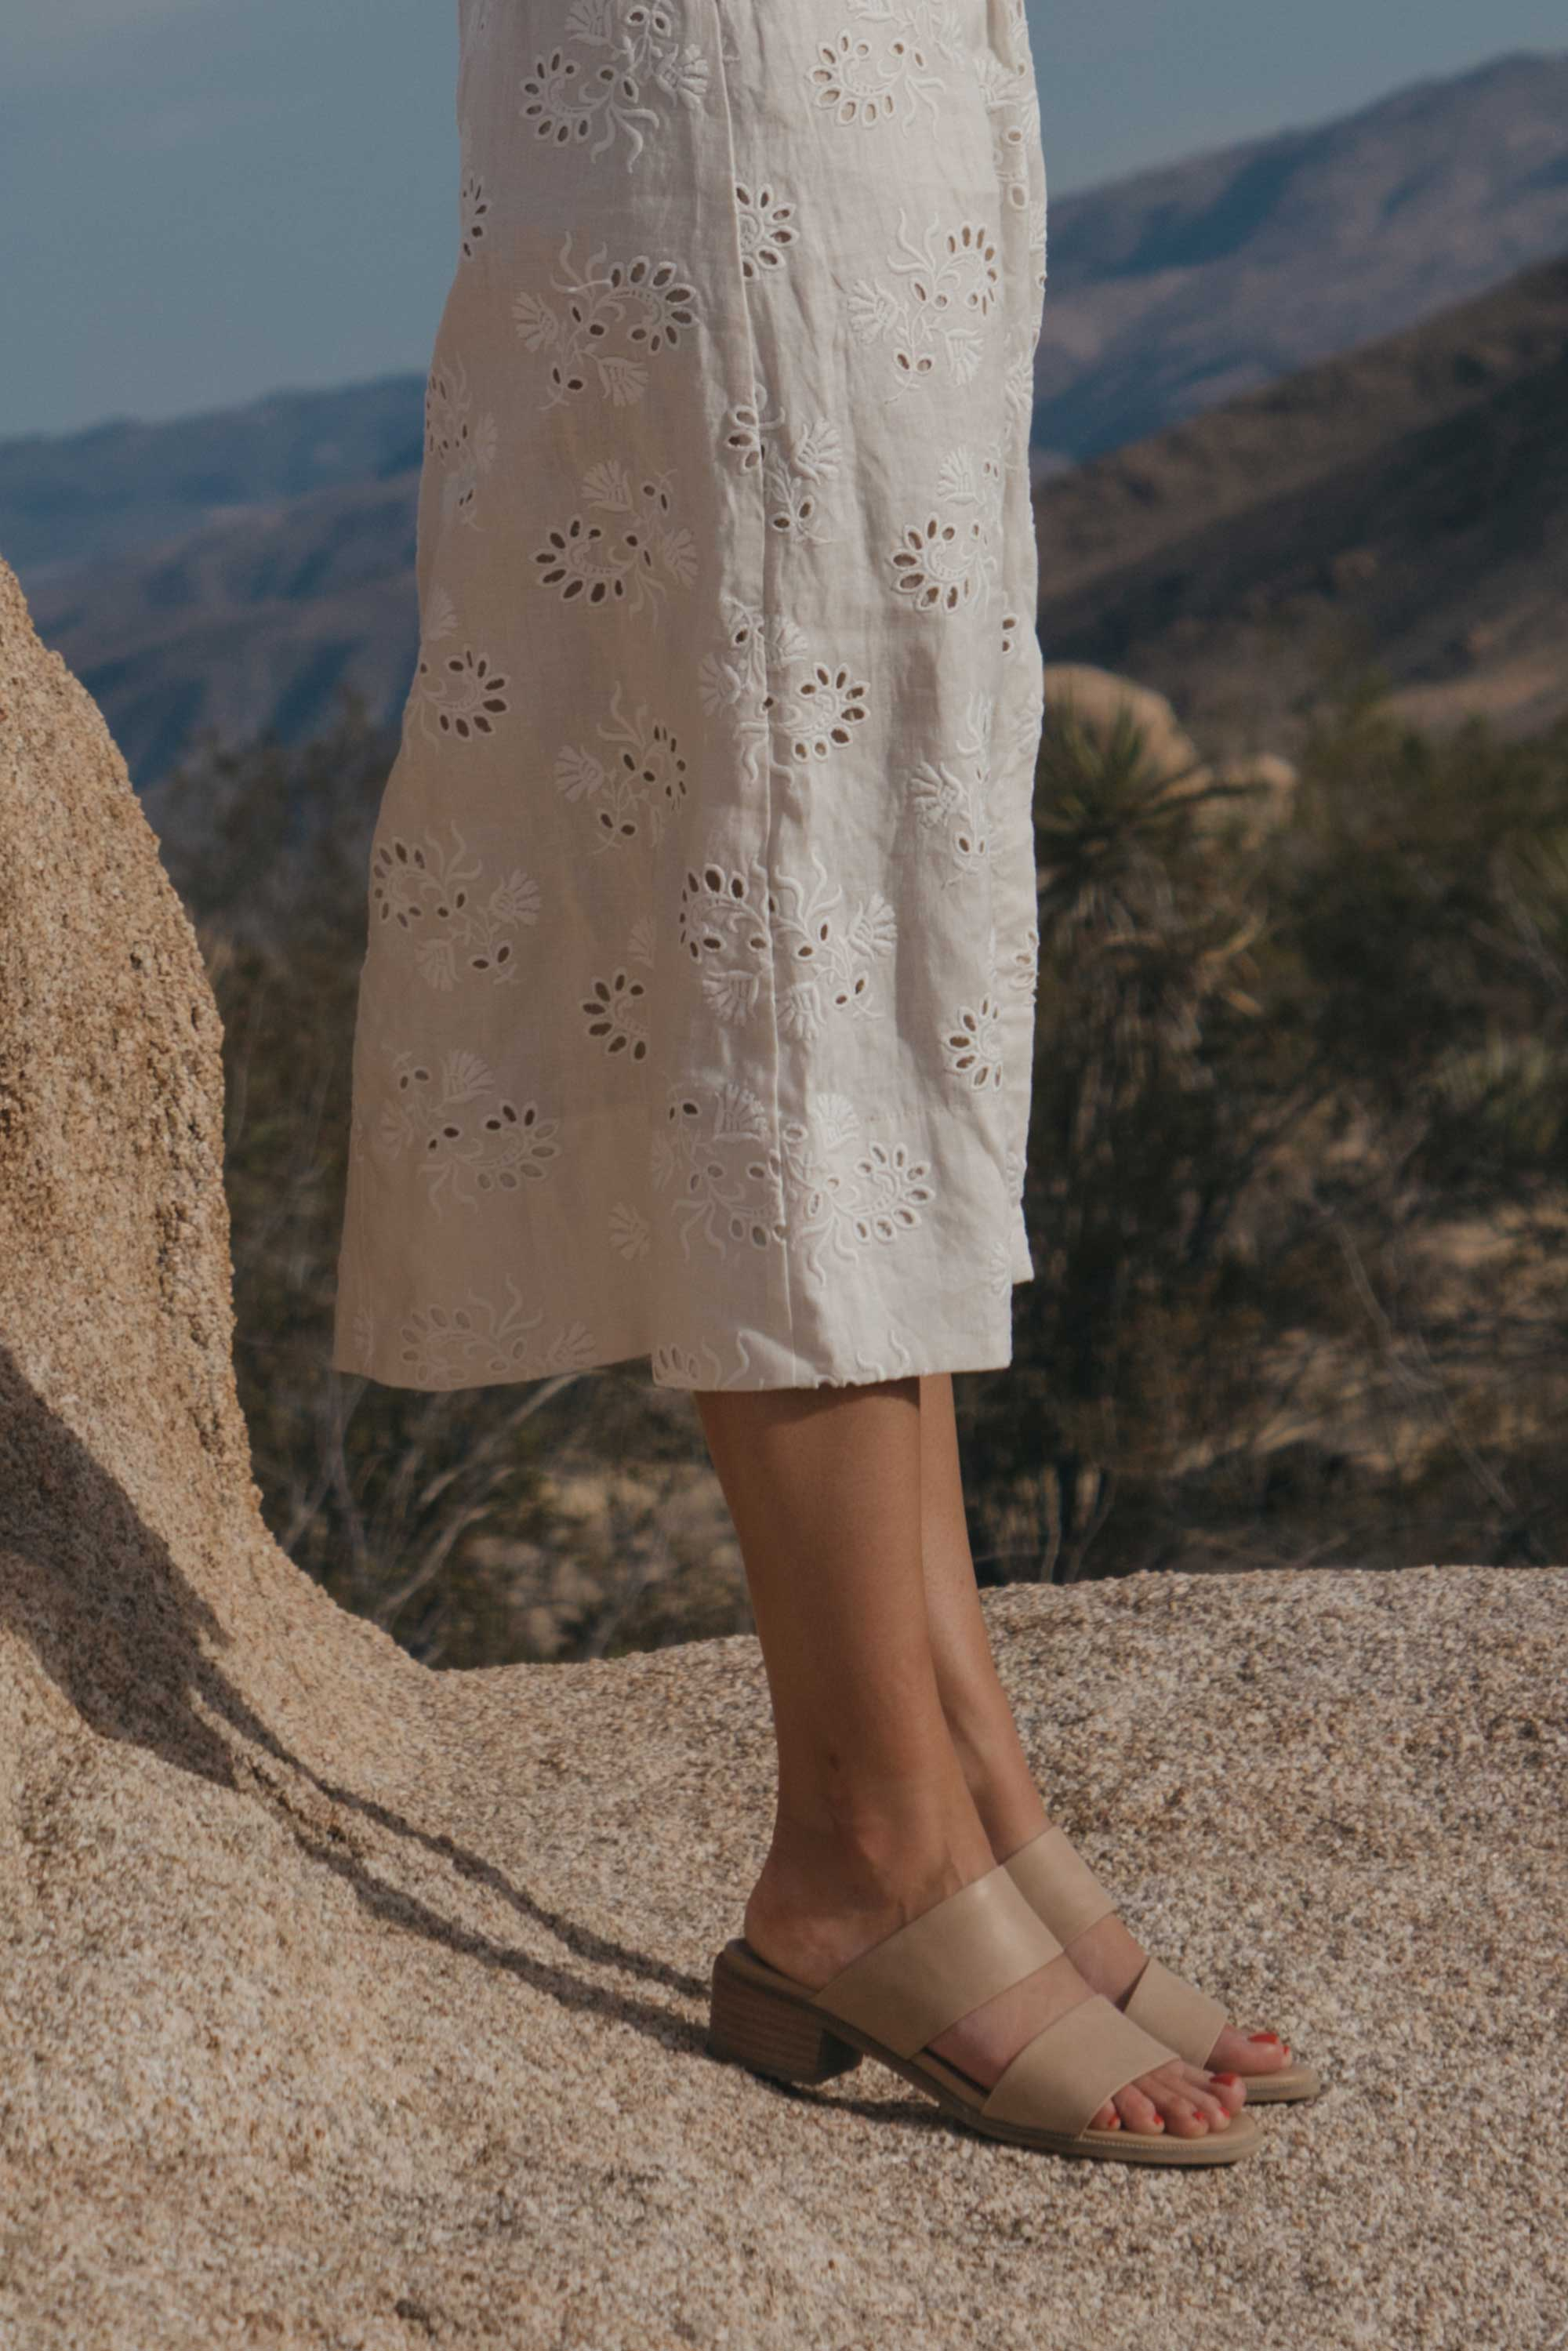 Rebecca-Taylor-vintage-inspired-eyelet-dress-Joshua-Tree-Festival-Outfit--18.jpg